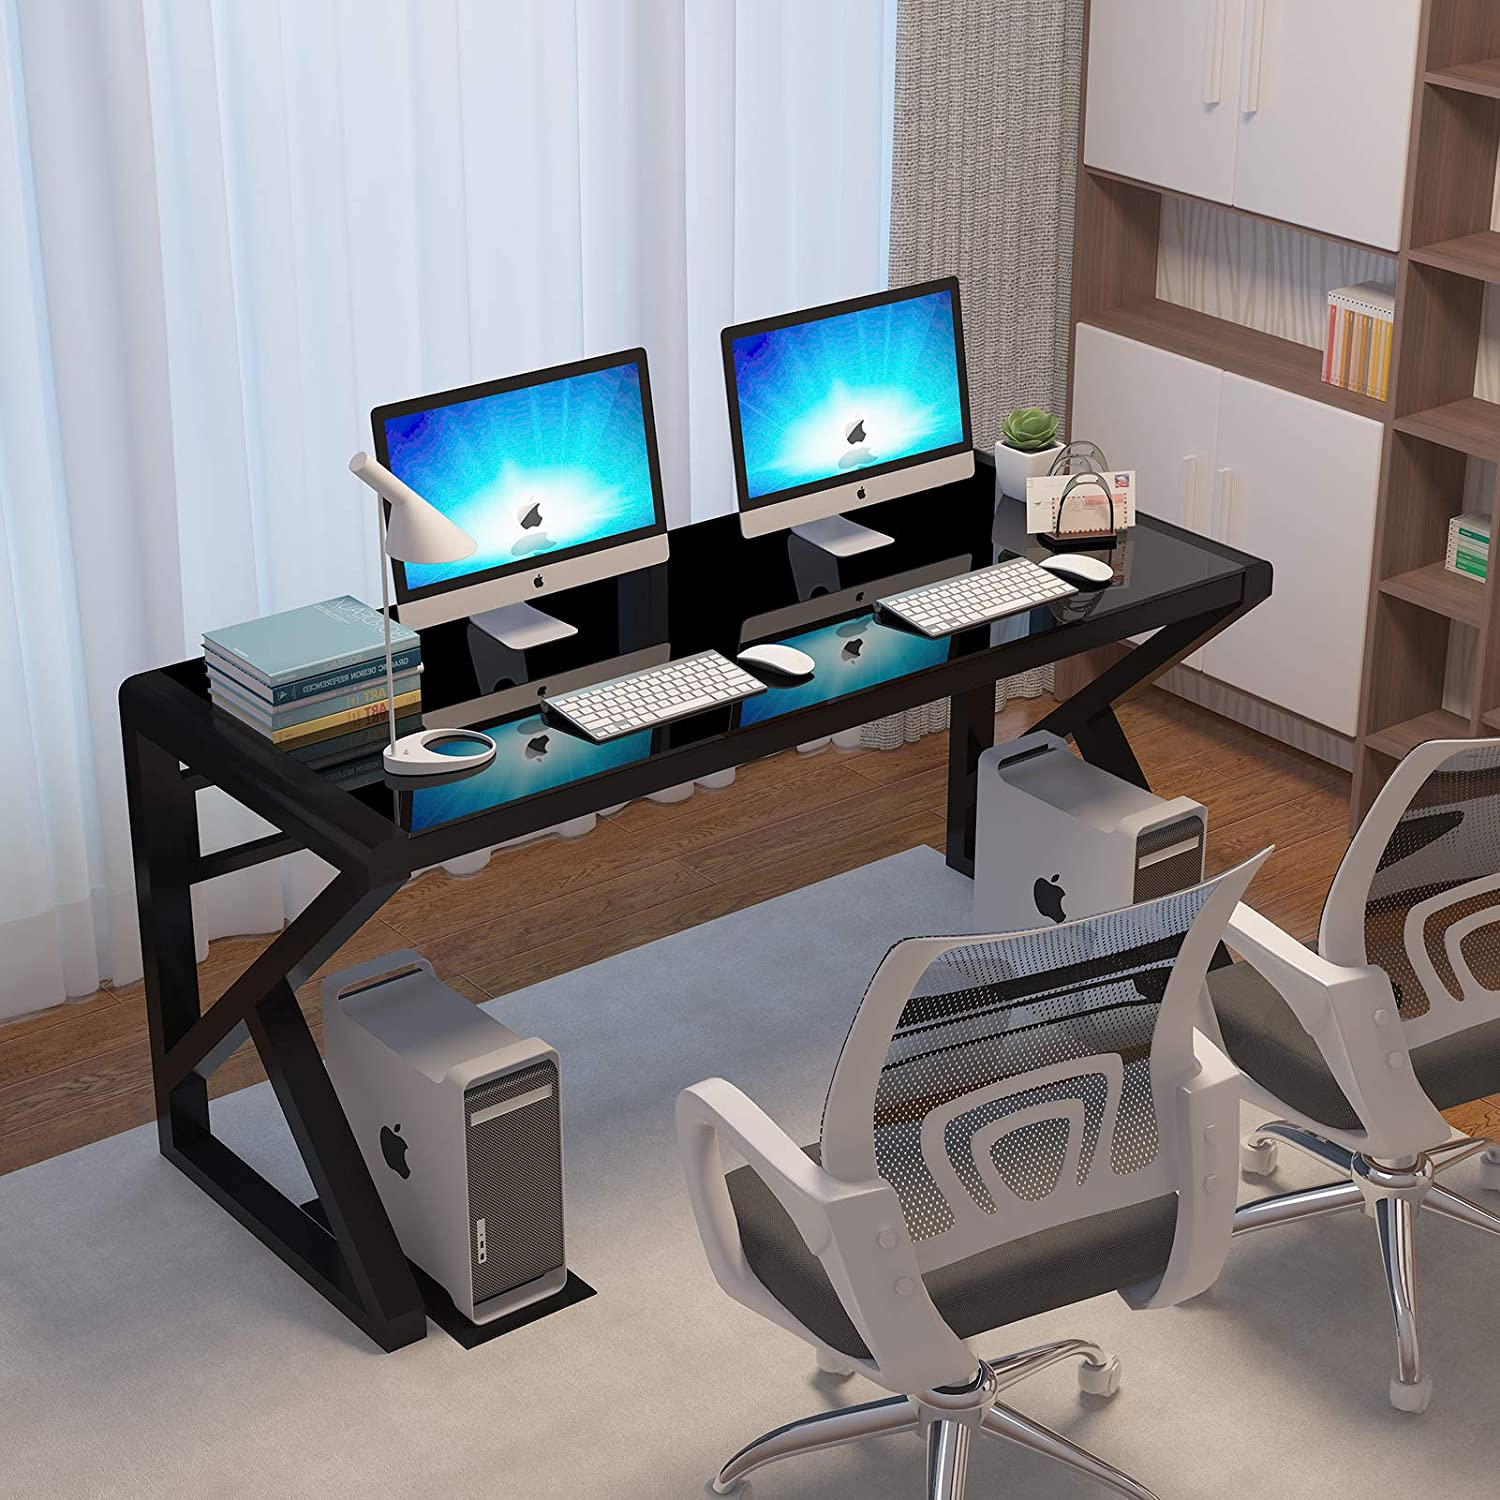 IPKIG Tempered Glass Computer shop Desk To with Metal Ranking TOP4 Frame and